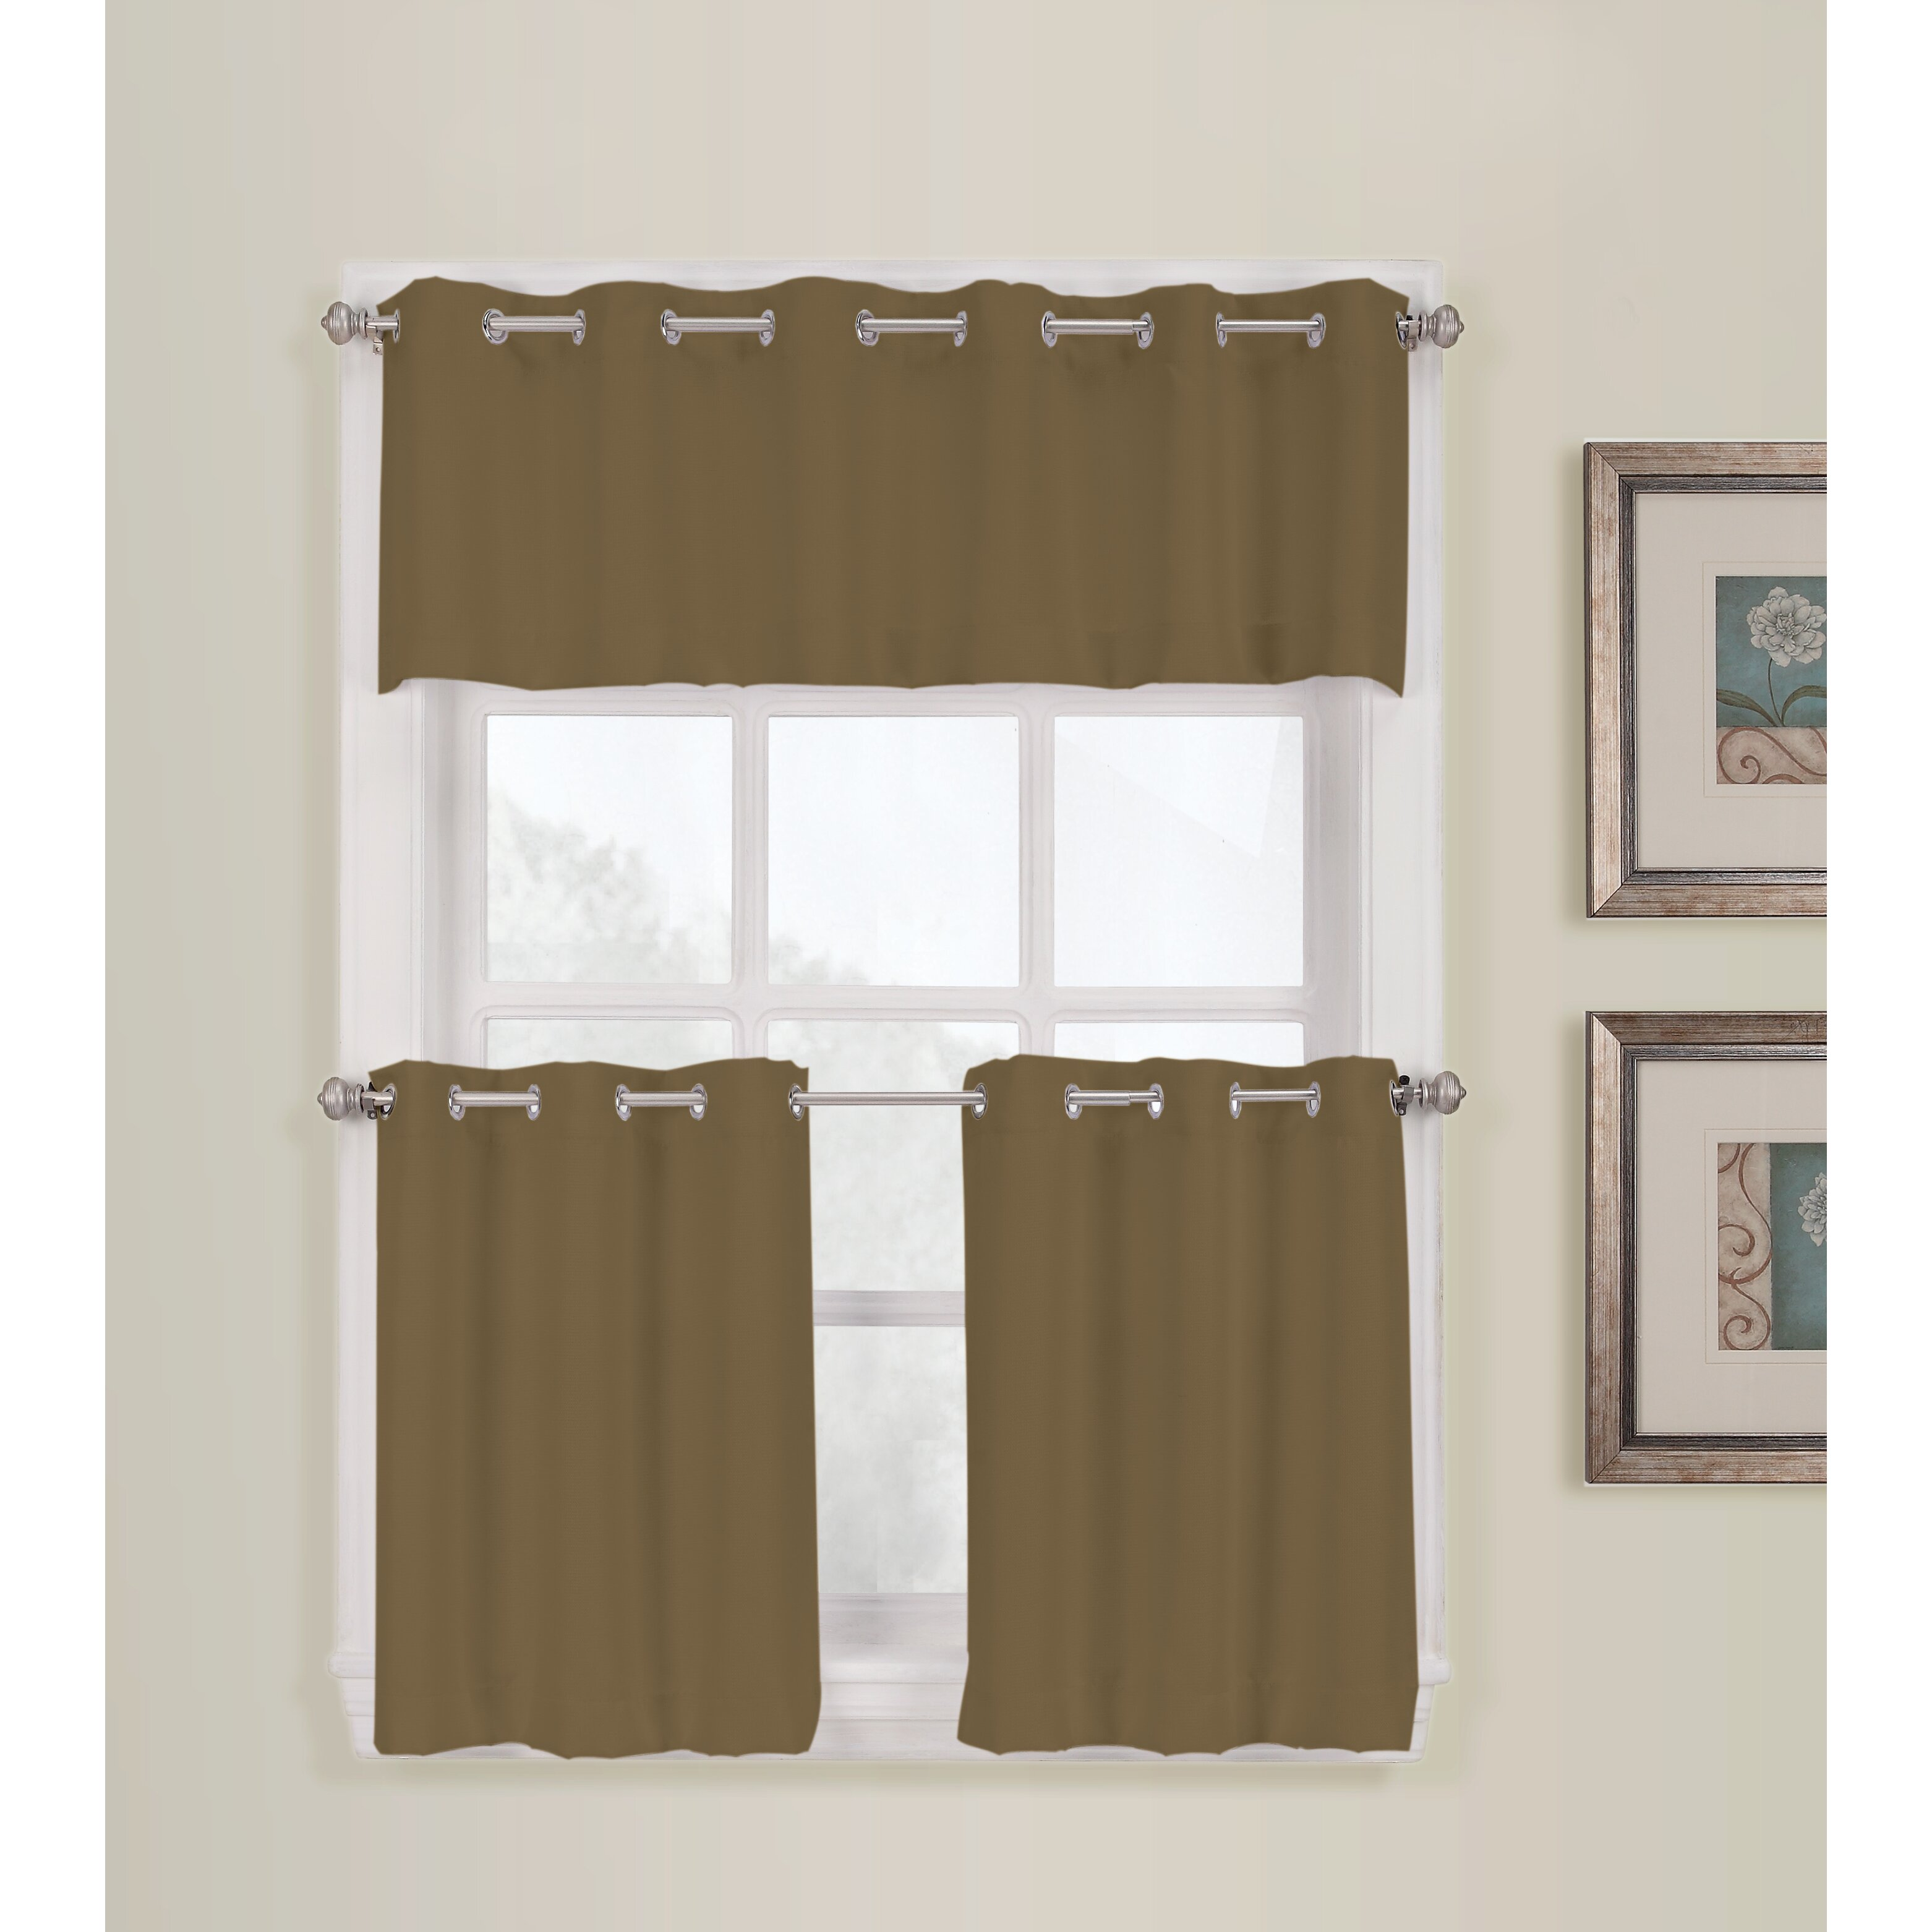 grommet treatments class astonishing touch of patterned curtains valance window sheer